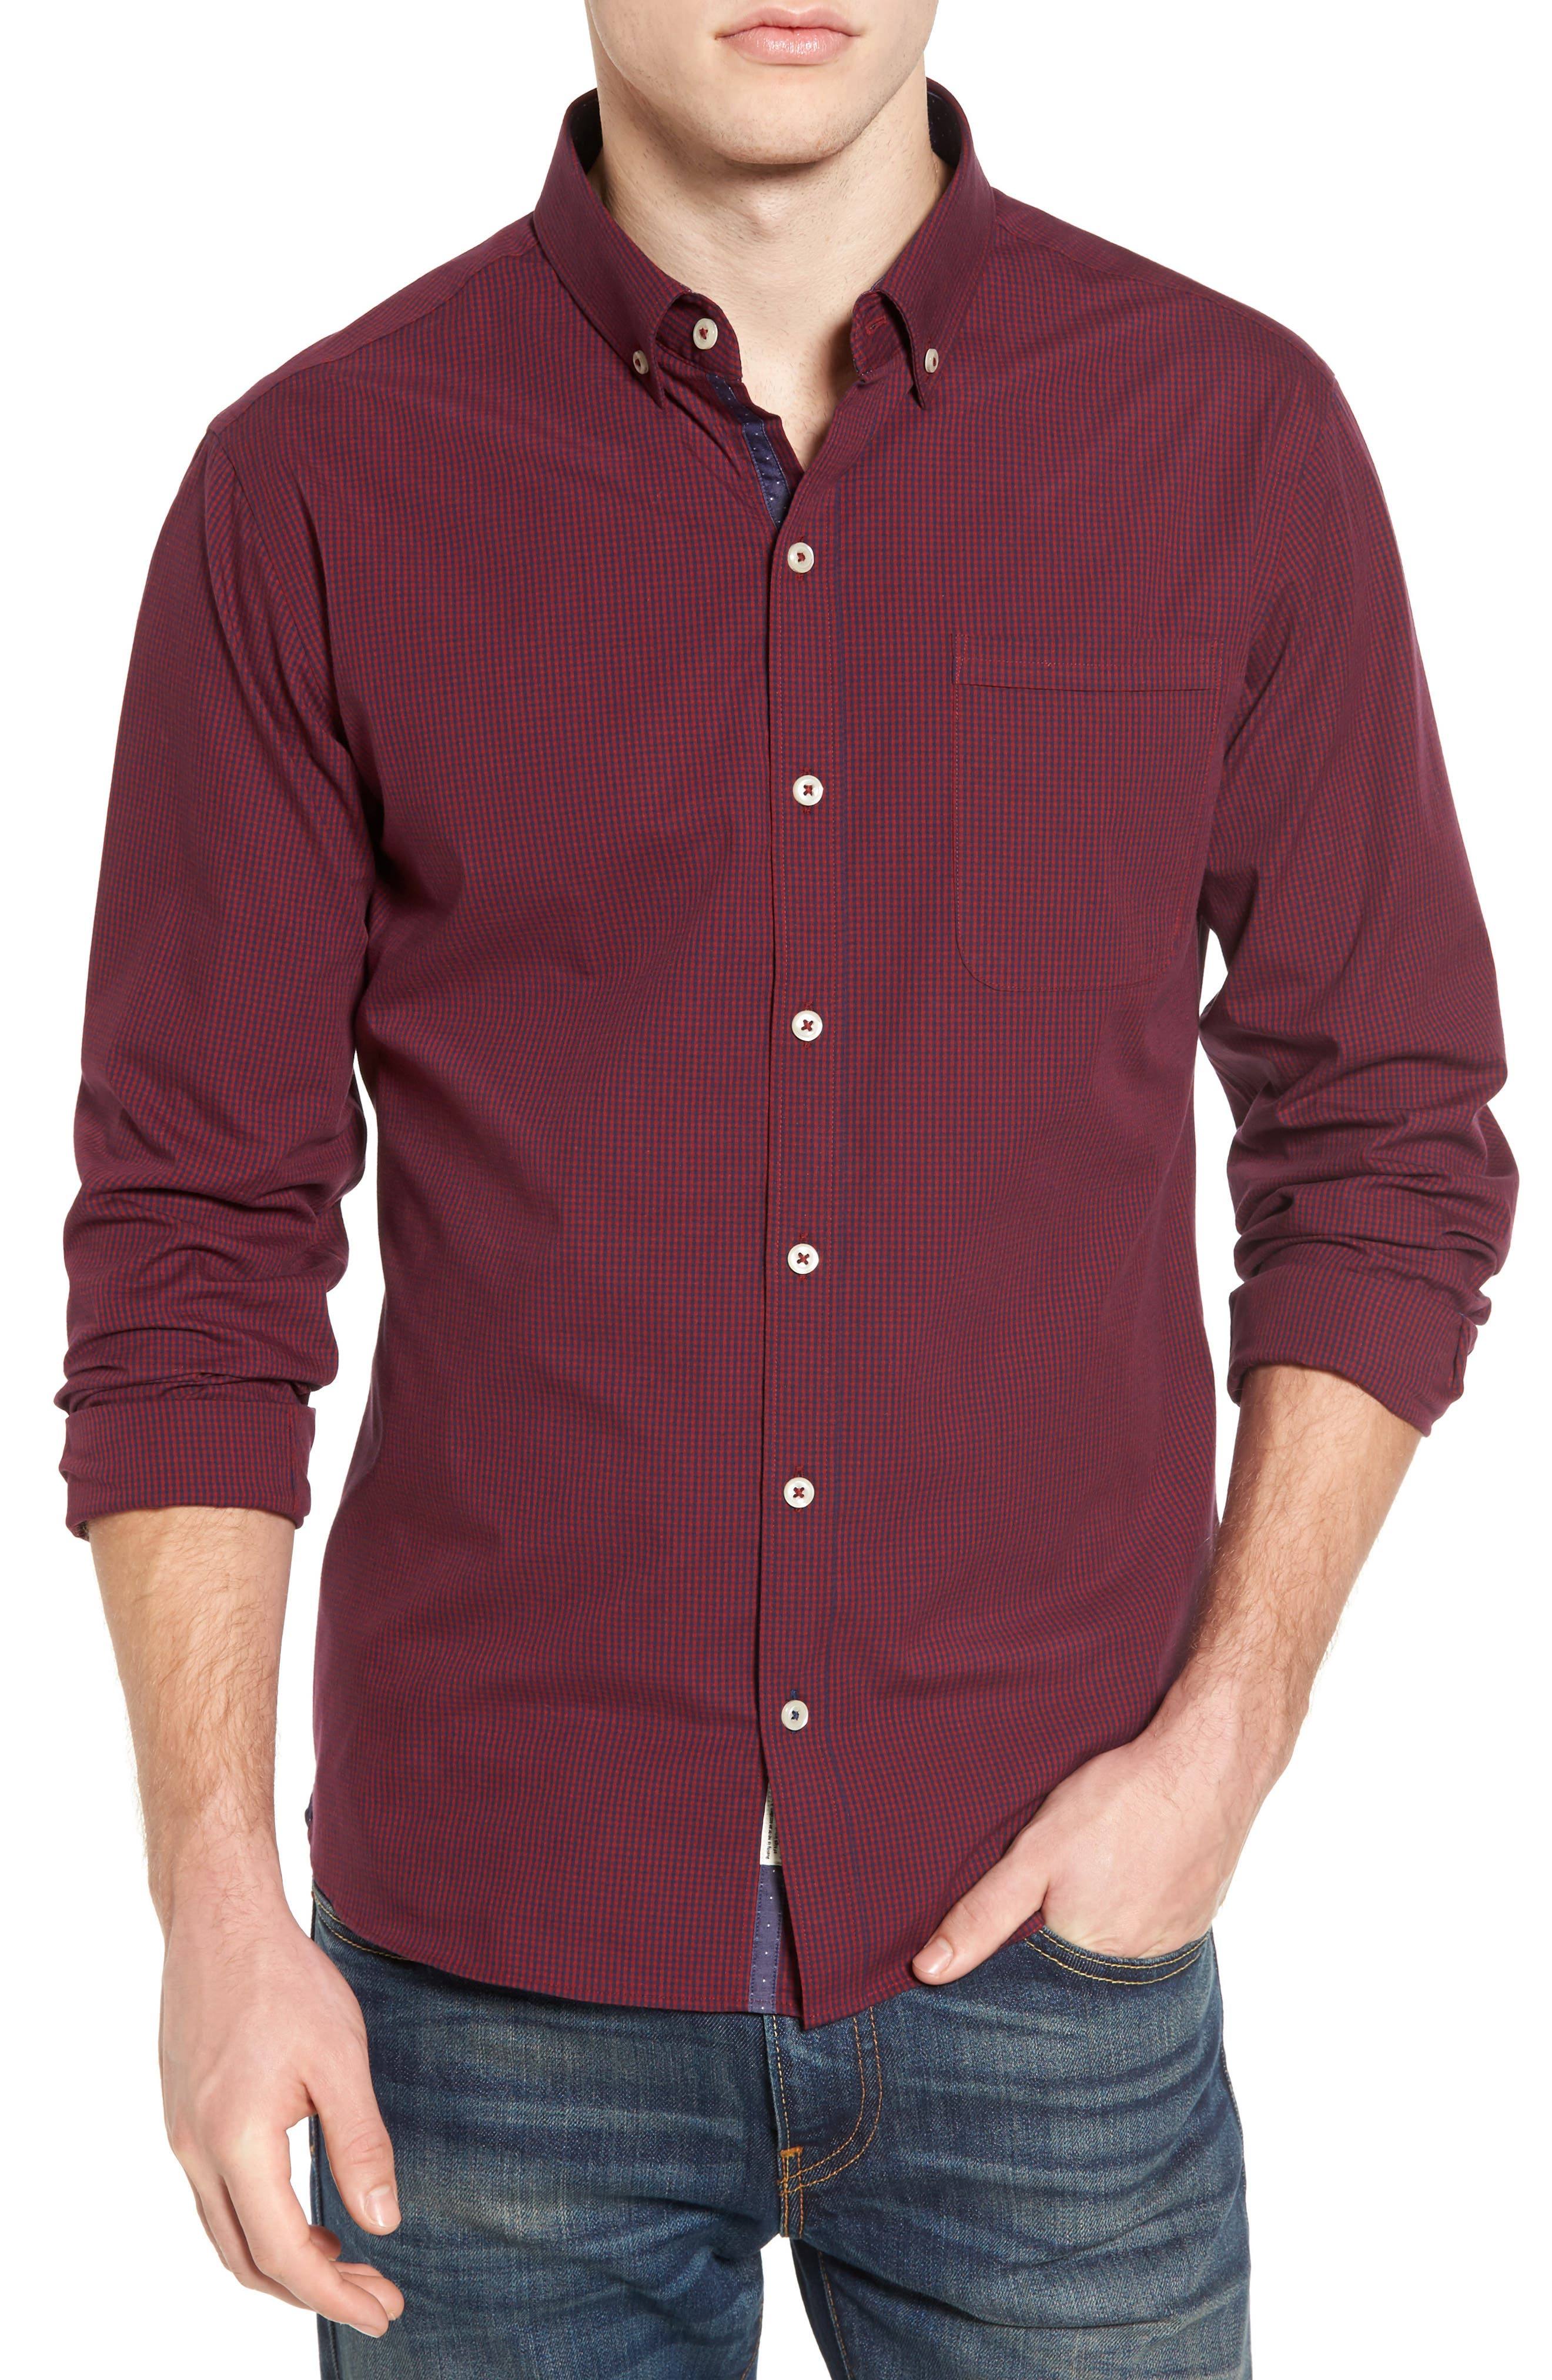 Oracle Woven Shirt,                         Main,                         color, Red